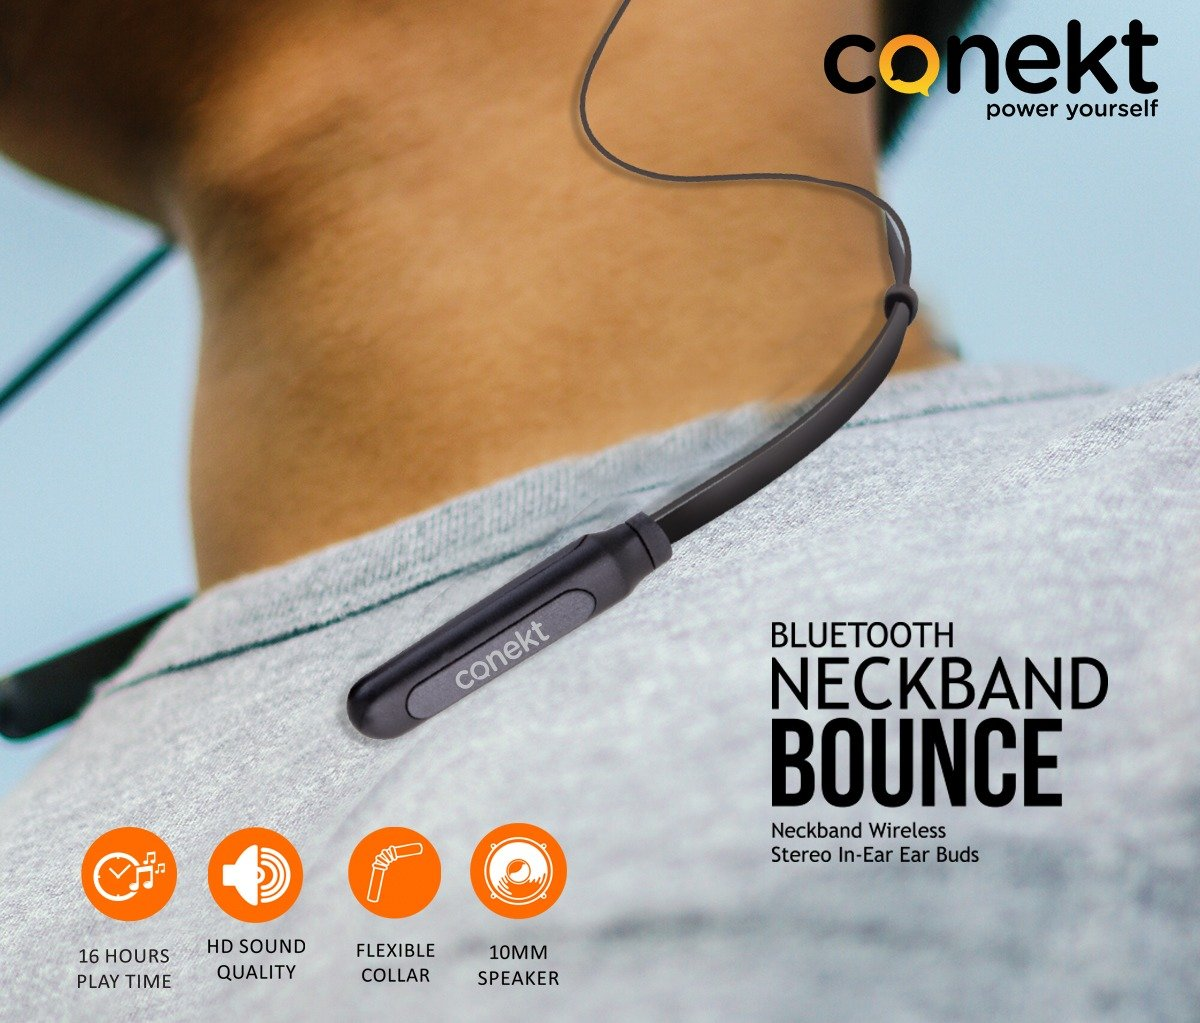 Stylish & Compact with HD Sound, Touch Controls only on Bluetooth Neckband BOUNCEExplore Our more Products http://www.conekt.in 👈👈👈For Buying Online https://tinyurl.com/y4qlnwyu 👈👈👈👈#Rohitsharma #Hitman #CWC19 #Worldcup19  #MobileGadgets #Conekt #Poweryourself